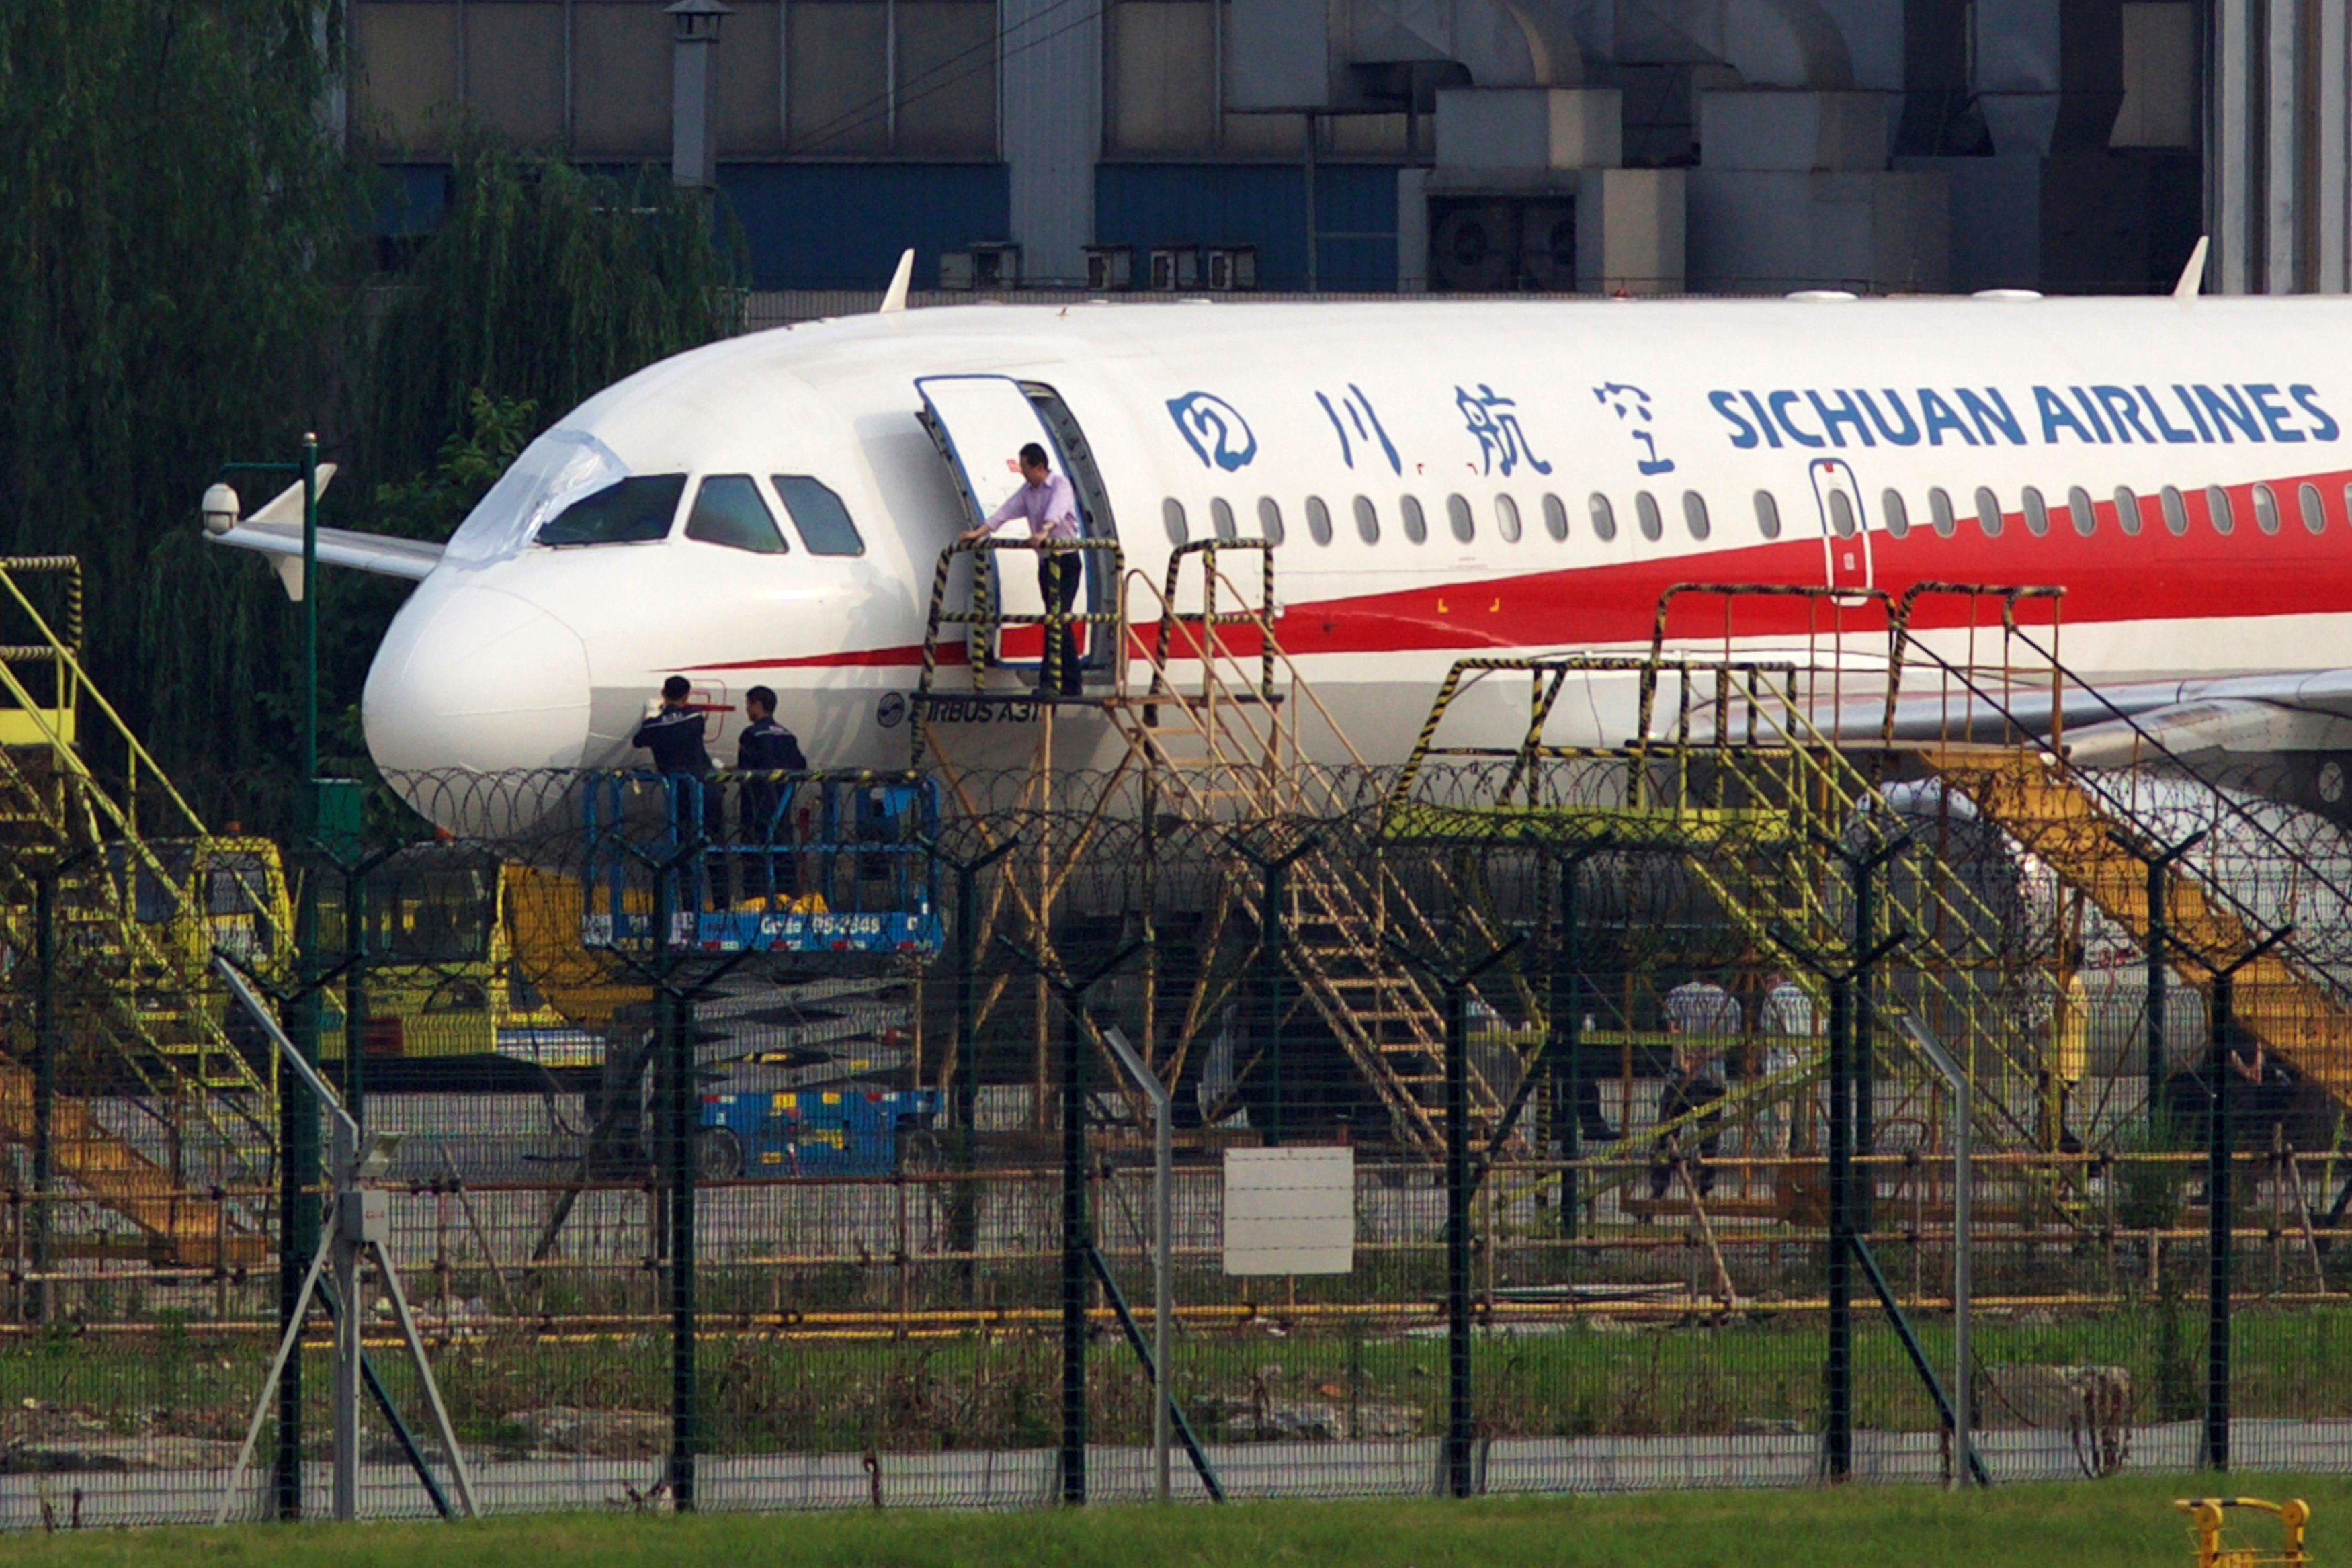 Sichuan Airlines 3u8633 Makes Emergency Landing After Window